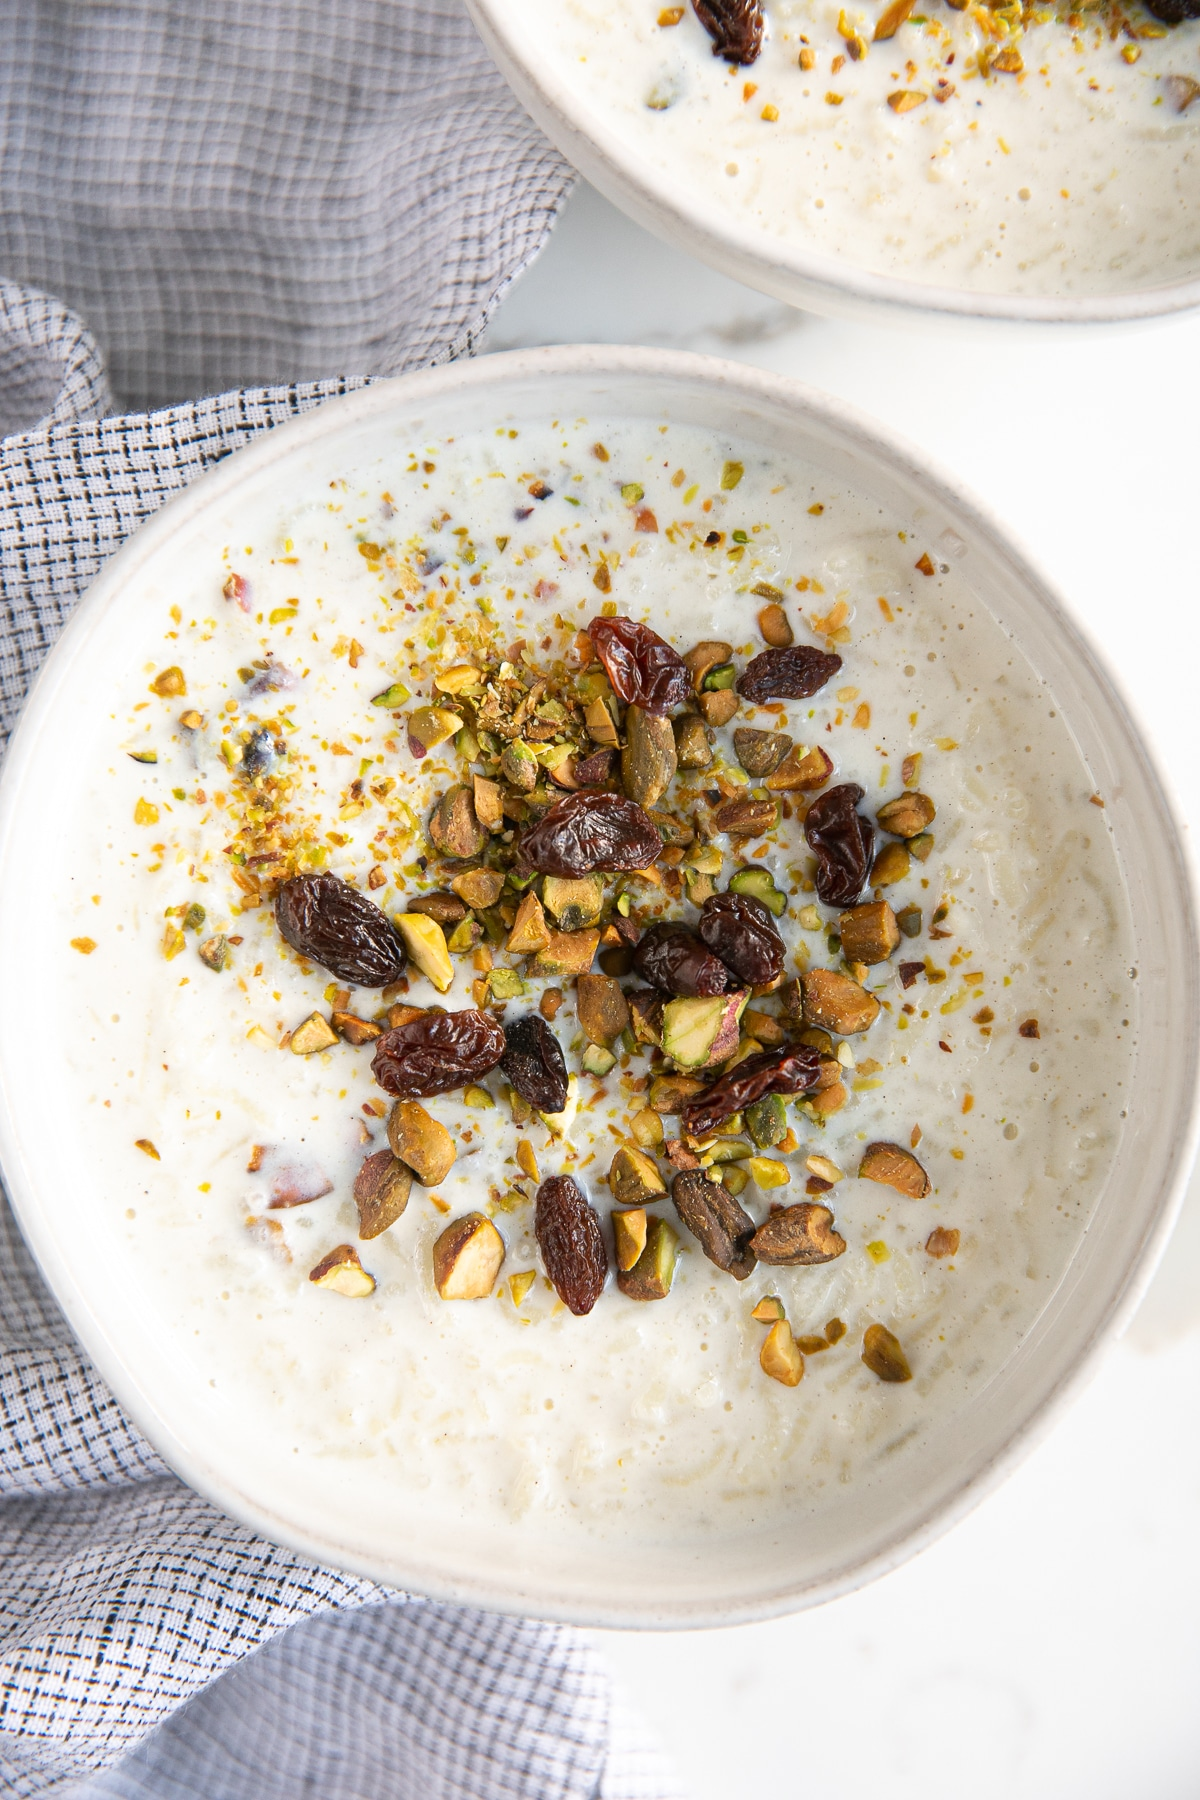 Kheer Recipe (Indian Rice Pudding) - The Forked Spoon